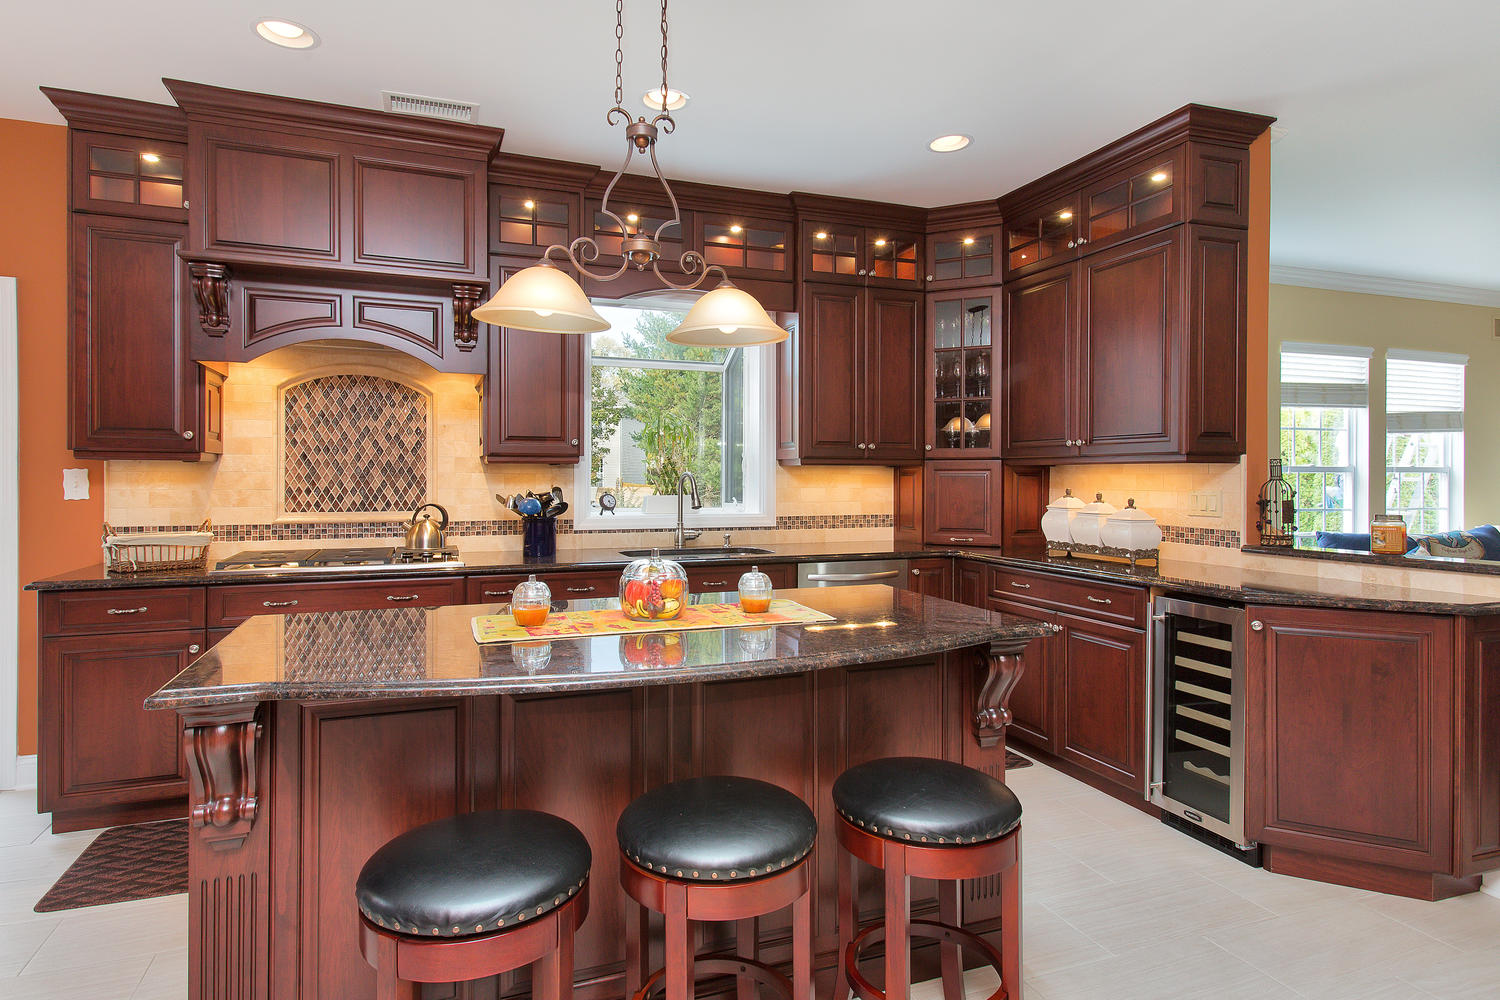 Dark Cherry Kitchen Perfection Wall New Jersey by Design ...